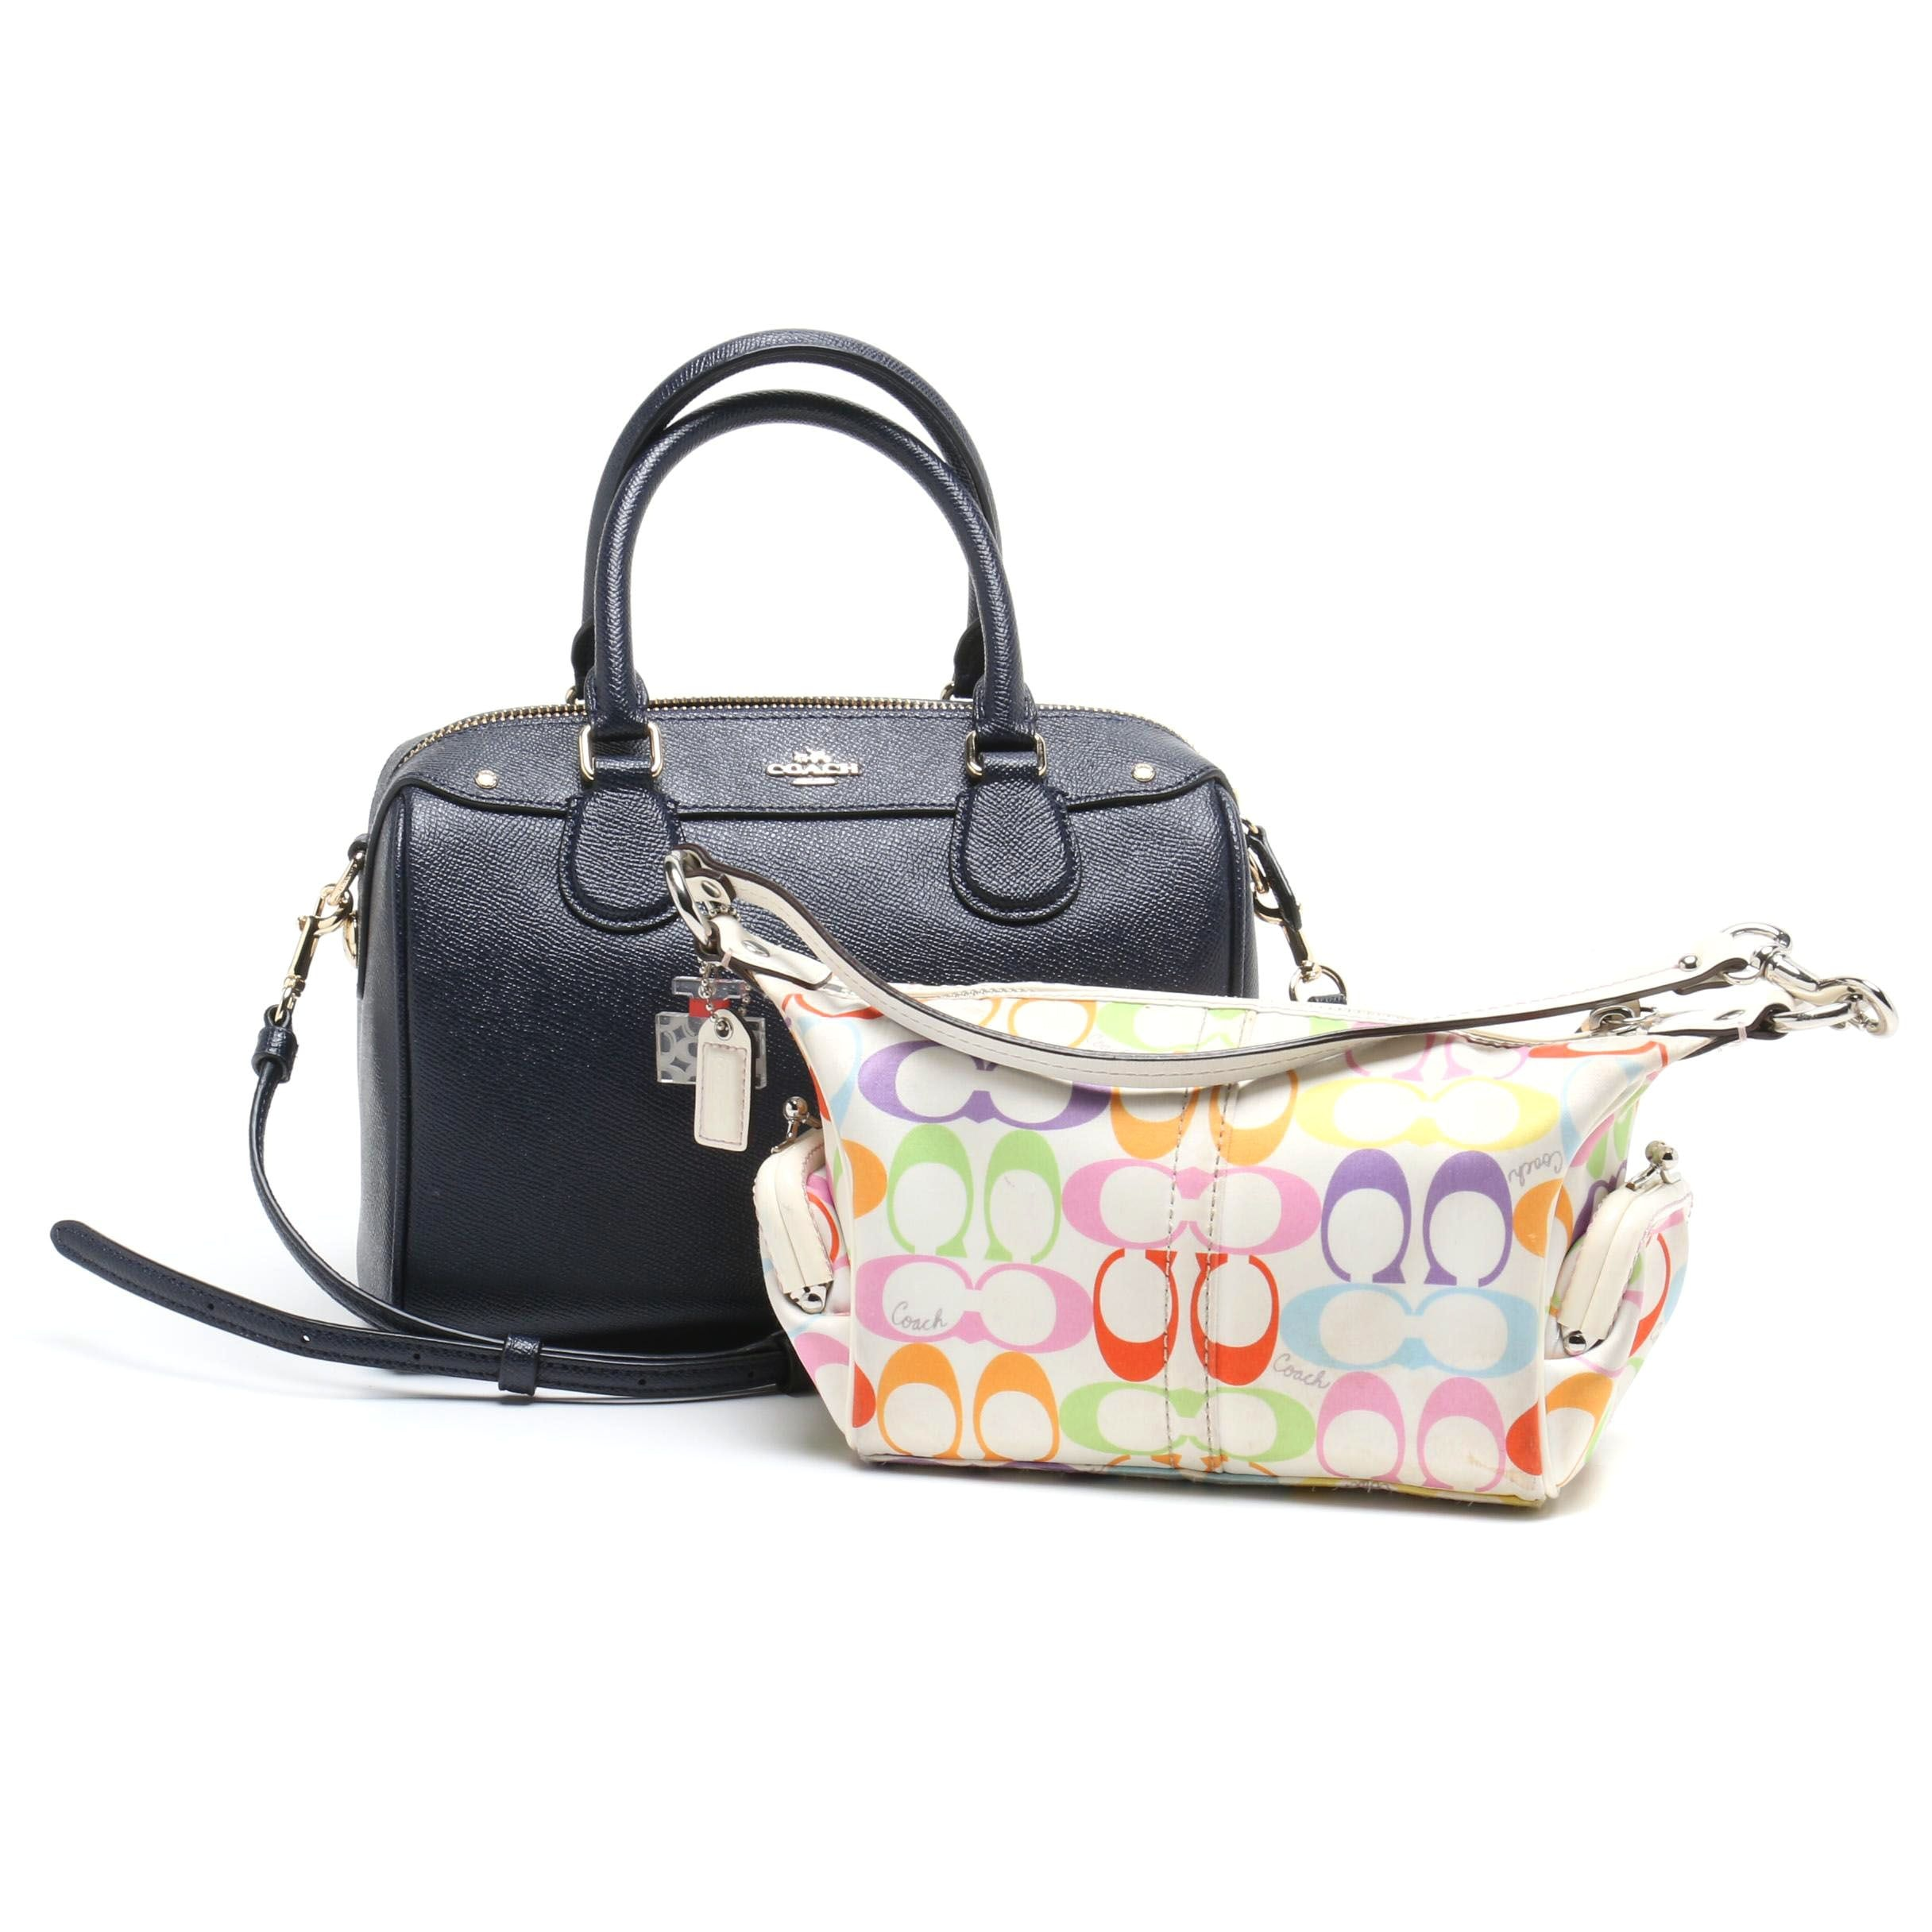 Coach Dark Blue Leather Mini Bennett Satchel and Multicolor Signature Bag